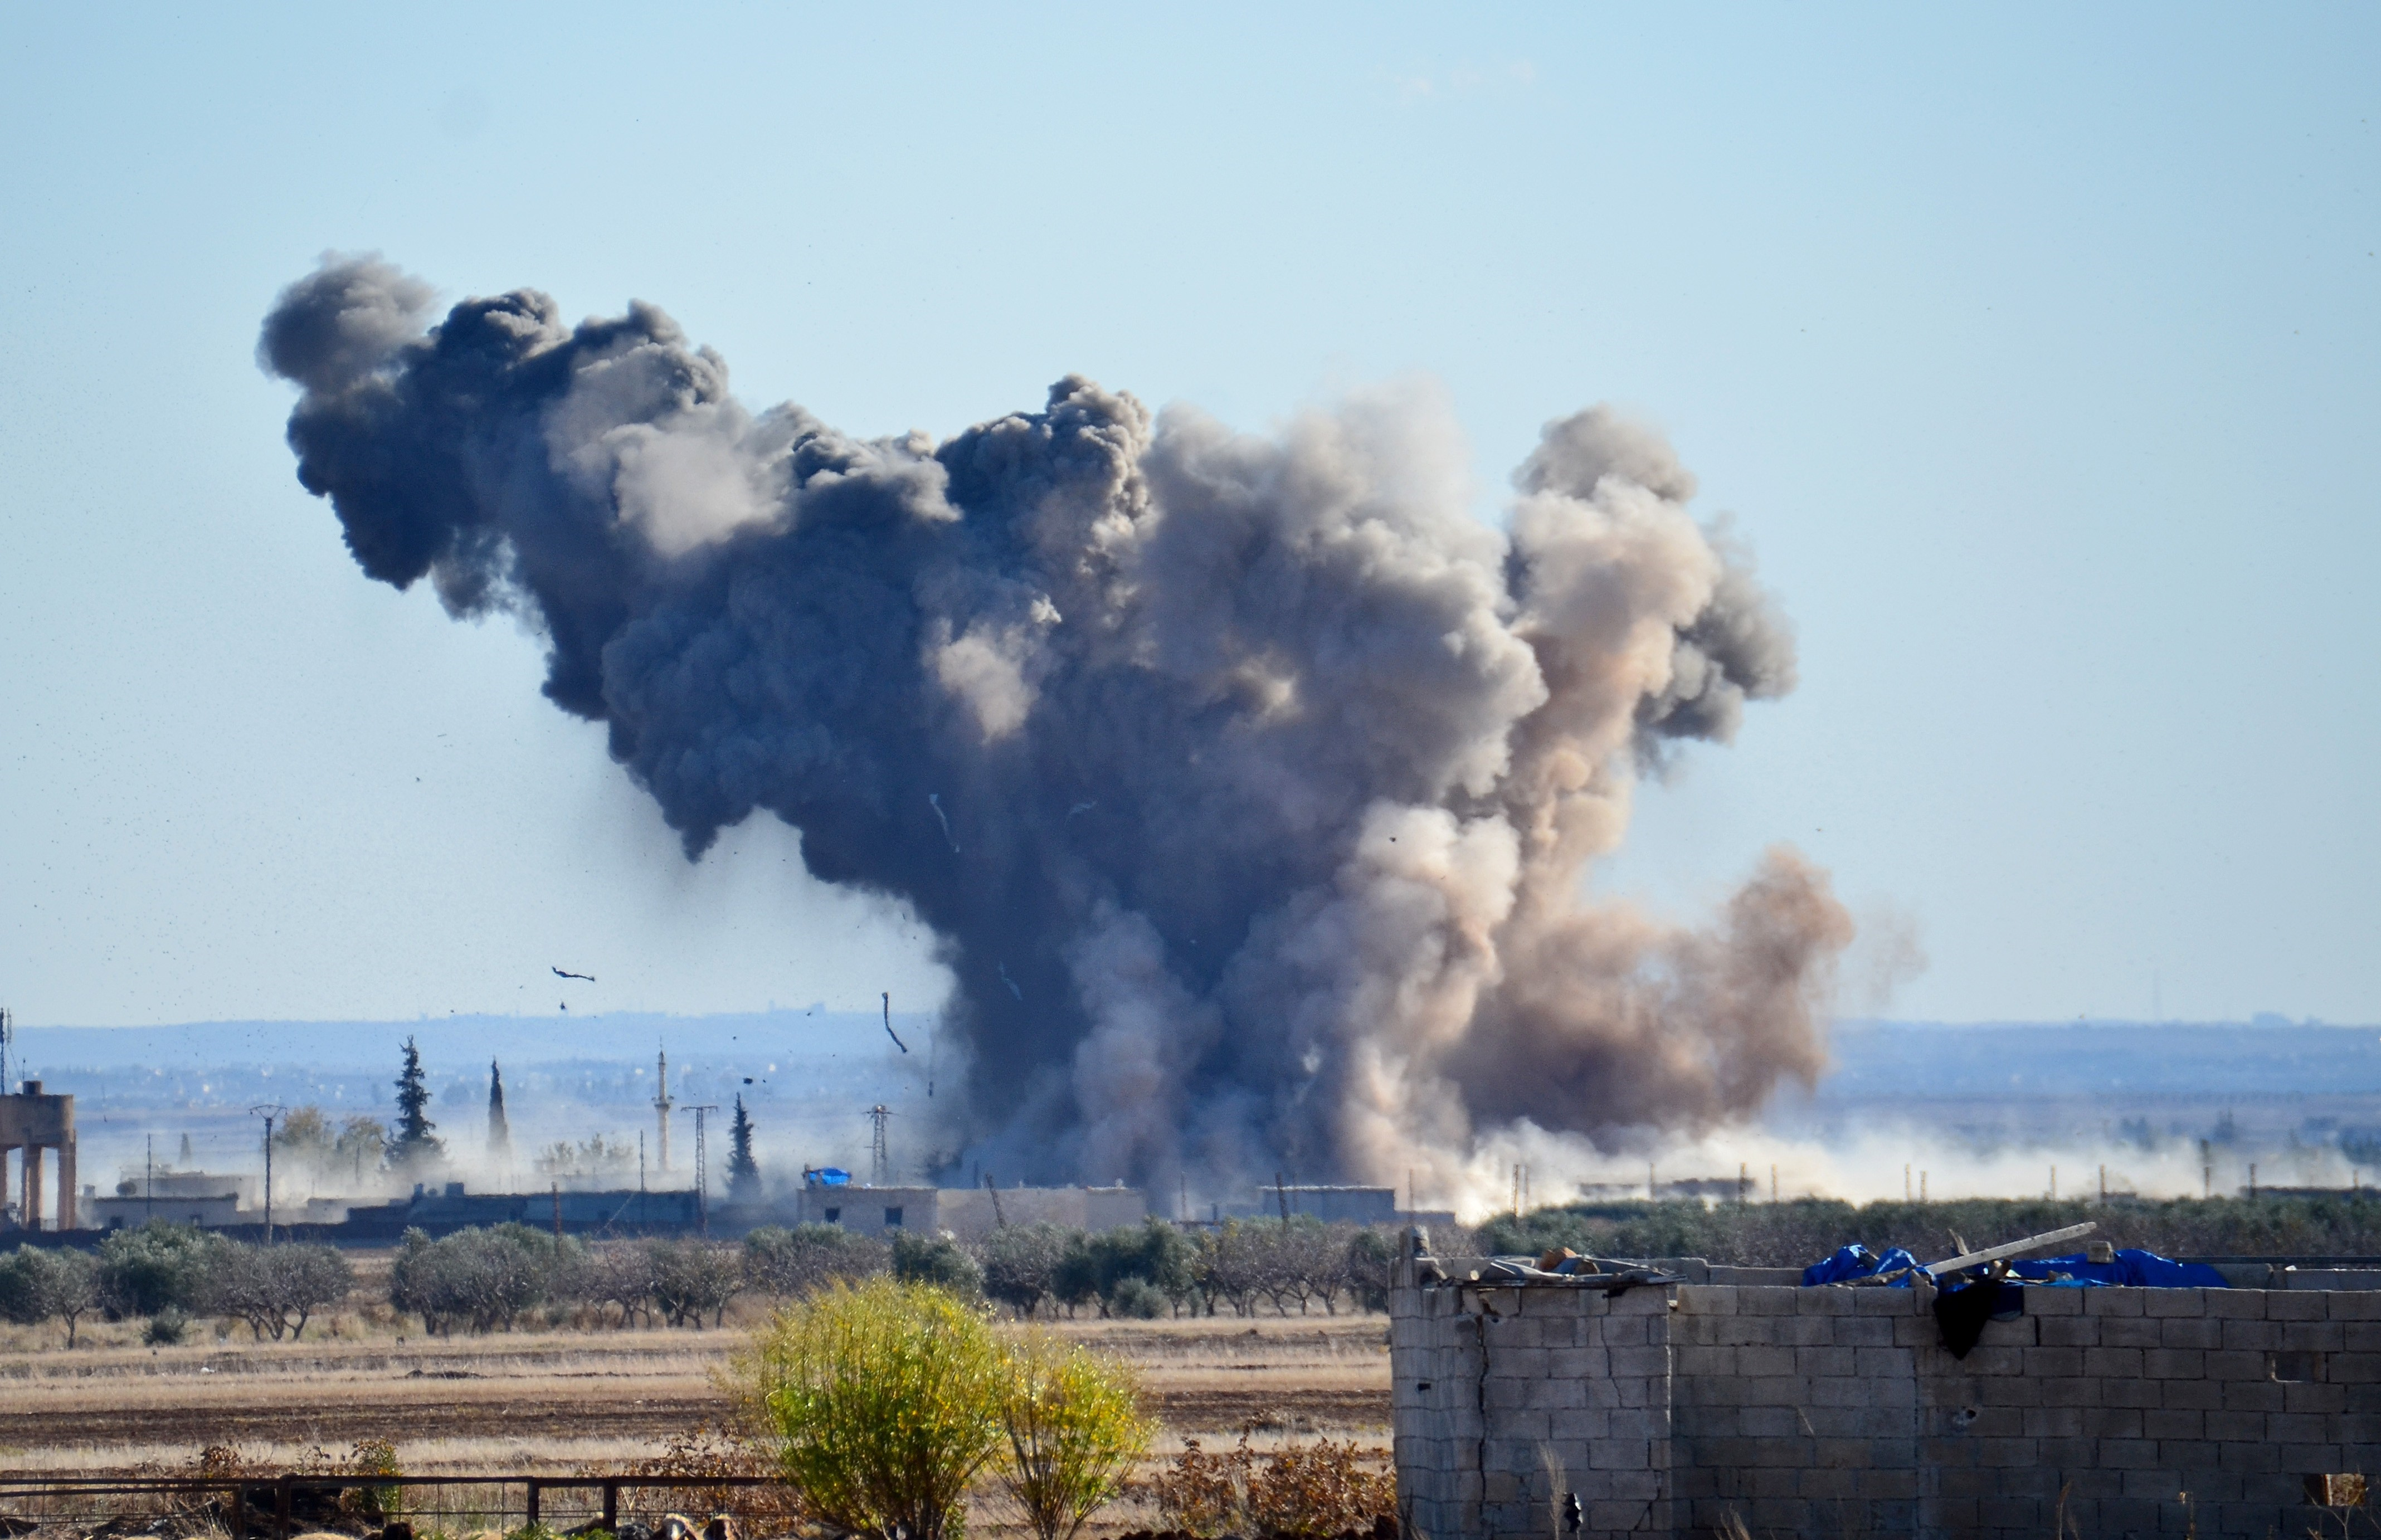 Smoke rises after the U.S.-led coalition air strikes hit ISIS positions at Brekida village in Aleppo, Syria, on Dec. 3, 2015